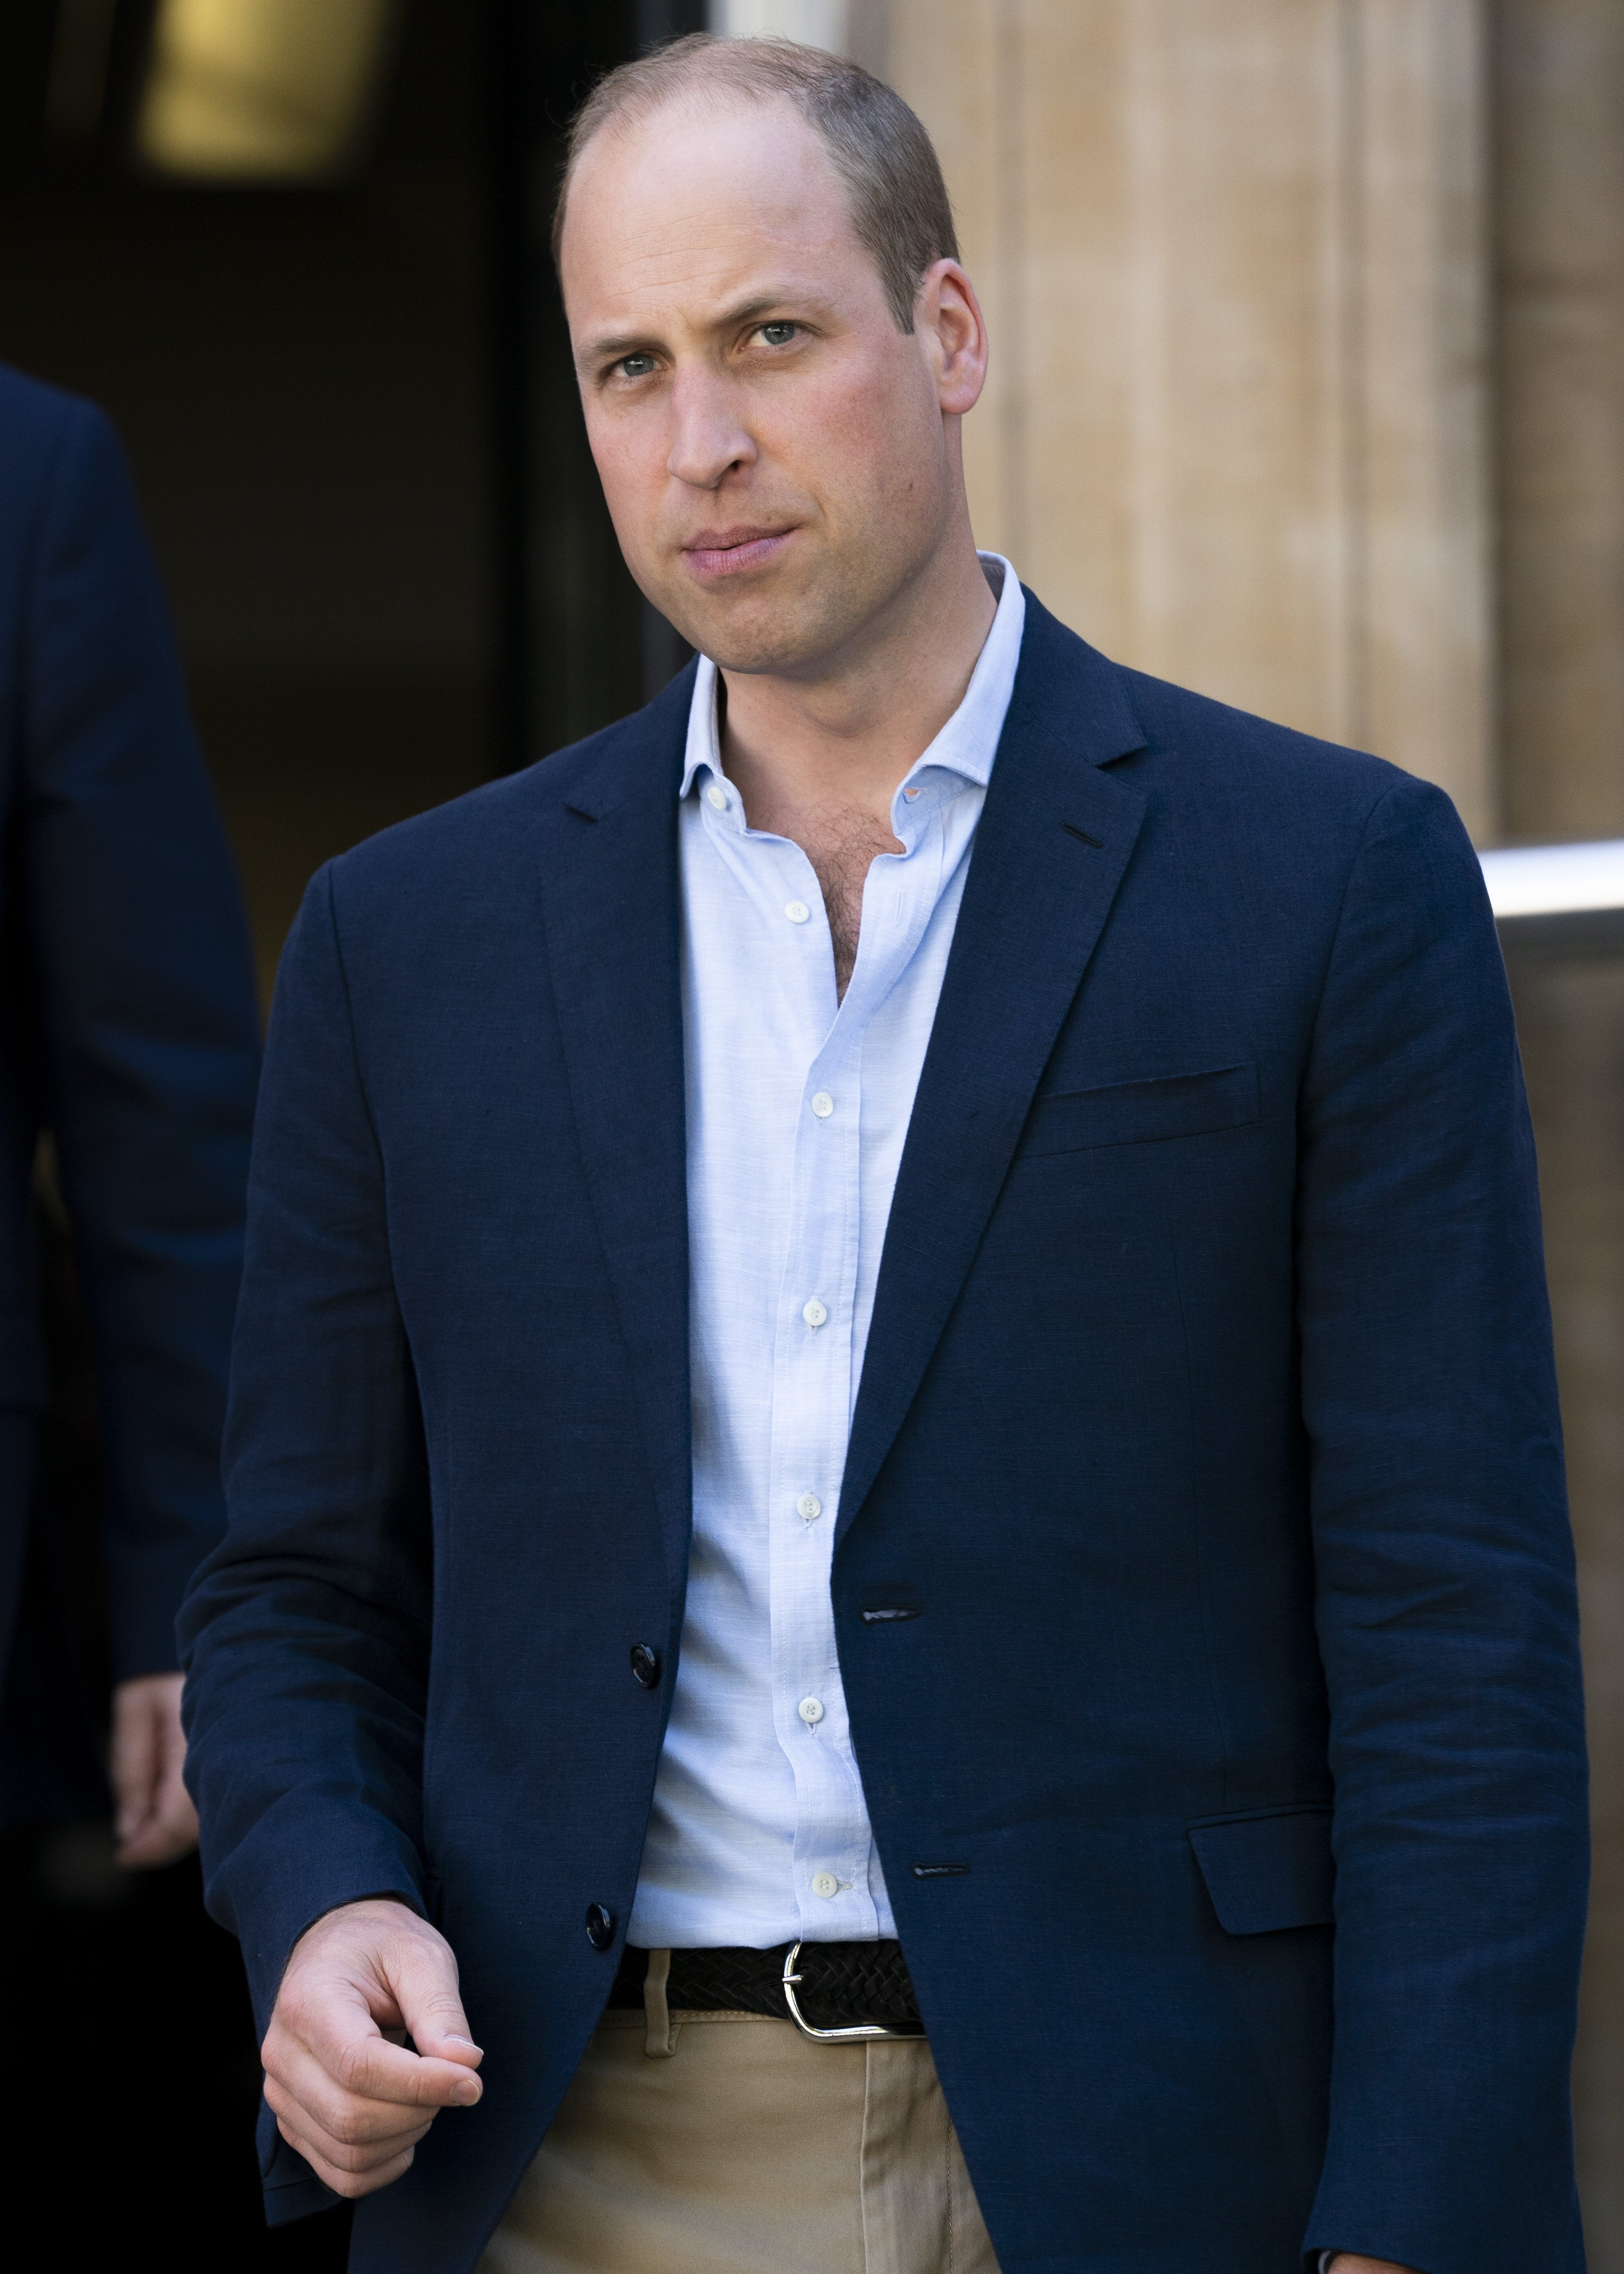 Prince William visits the Royal Marsden in London, United Kingdom on July 4, 2019 | Photo: Getty Images